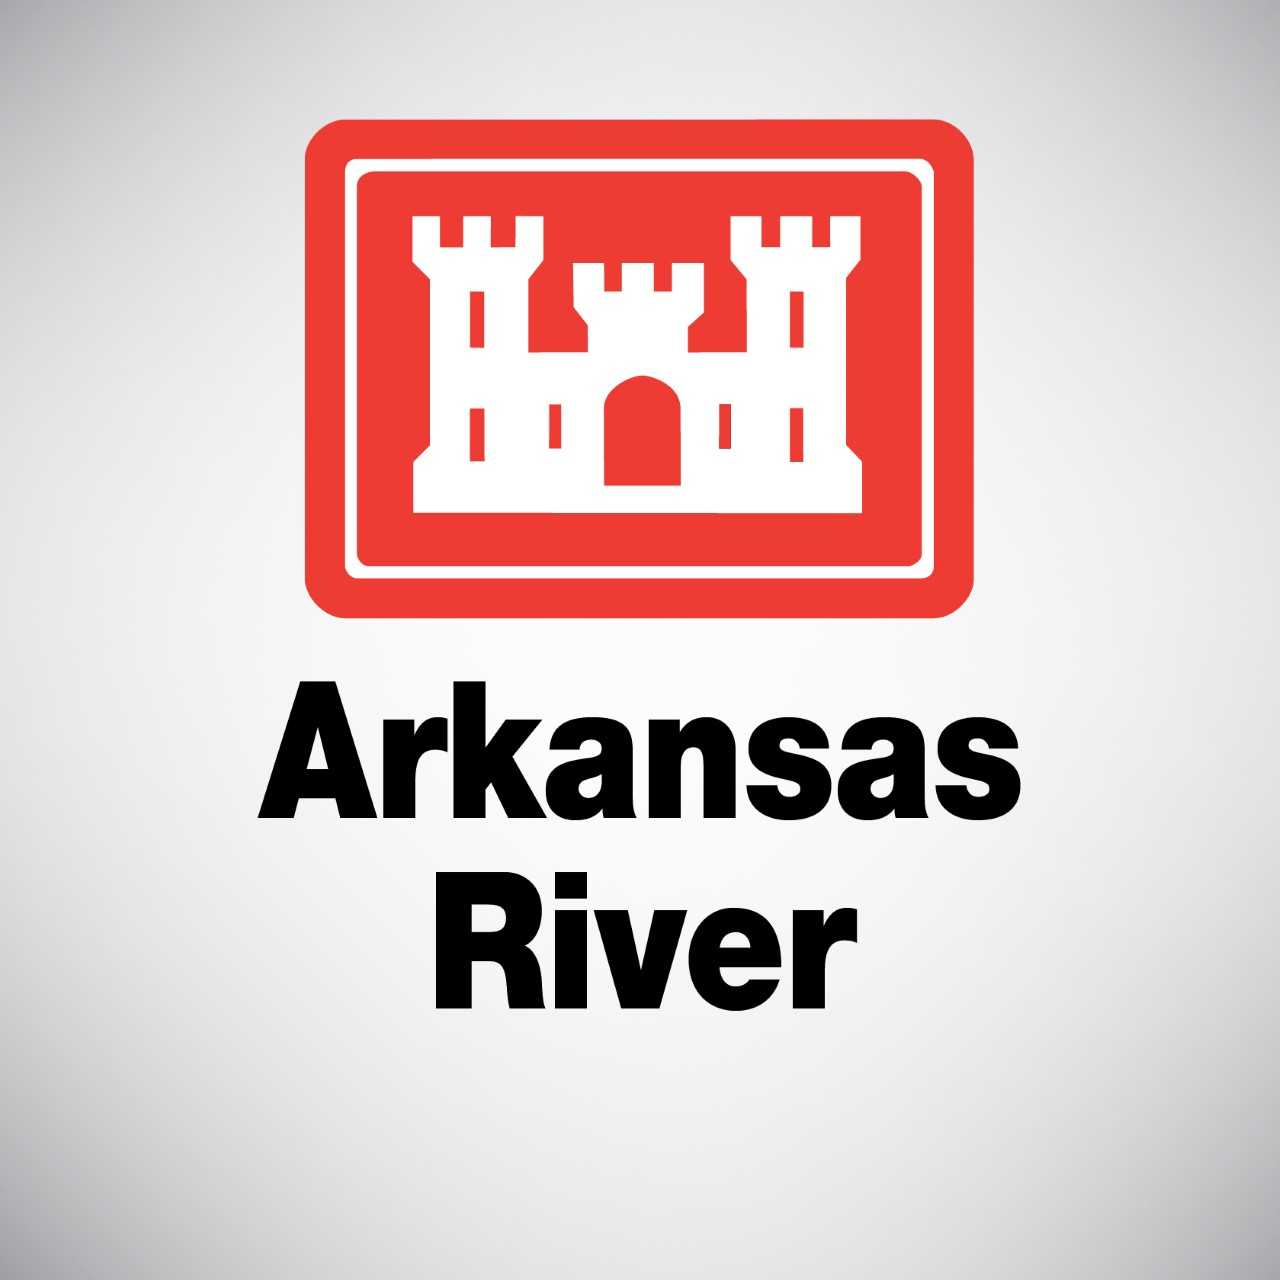 corps arkansas river_1560018709169.jfif.jpg